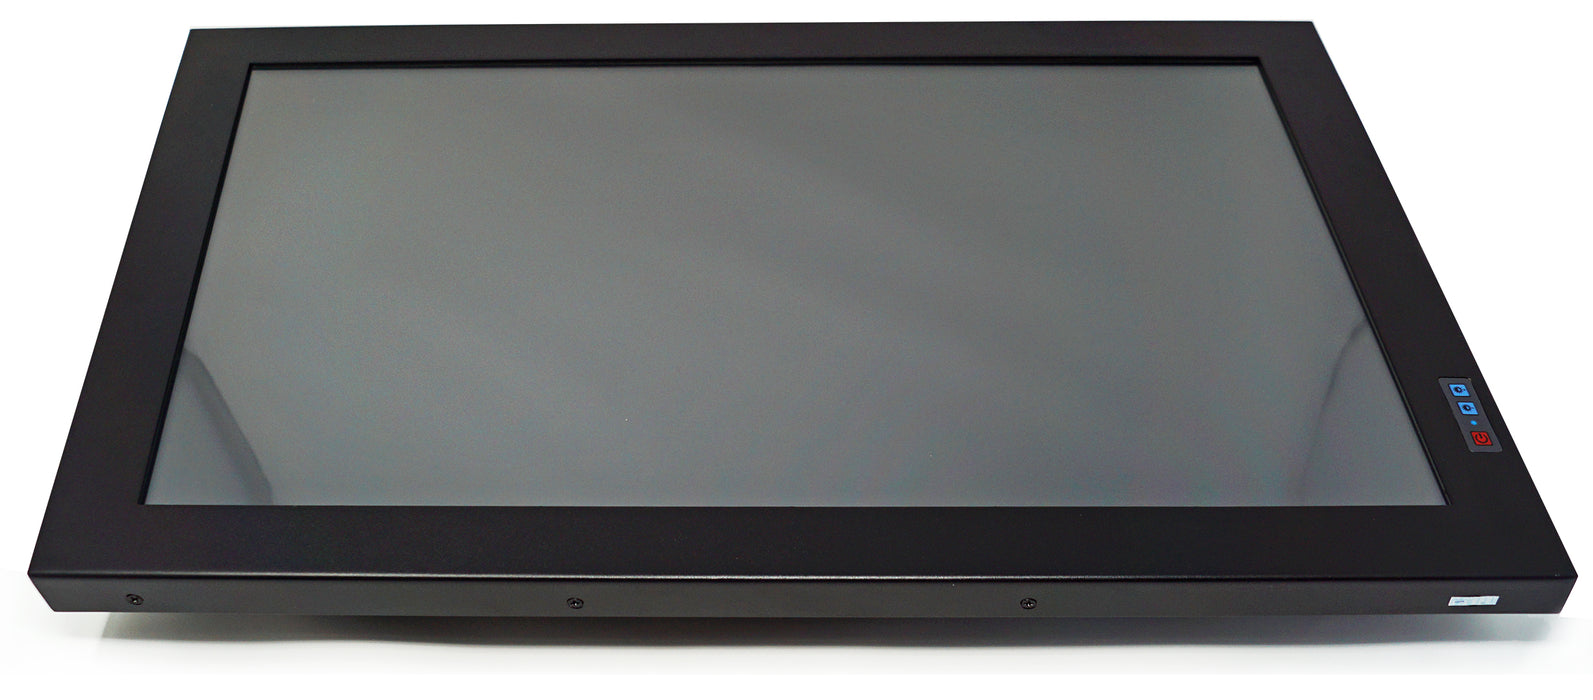 INDUSTRIAL PANEL MOUNT TOUCH SCREEN 21''